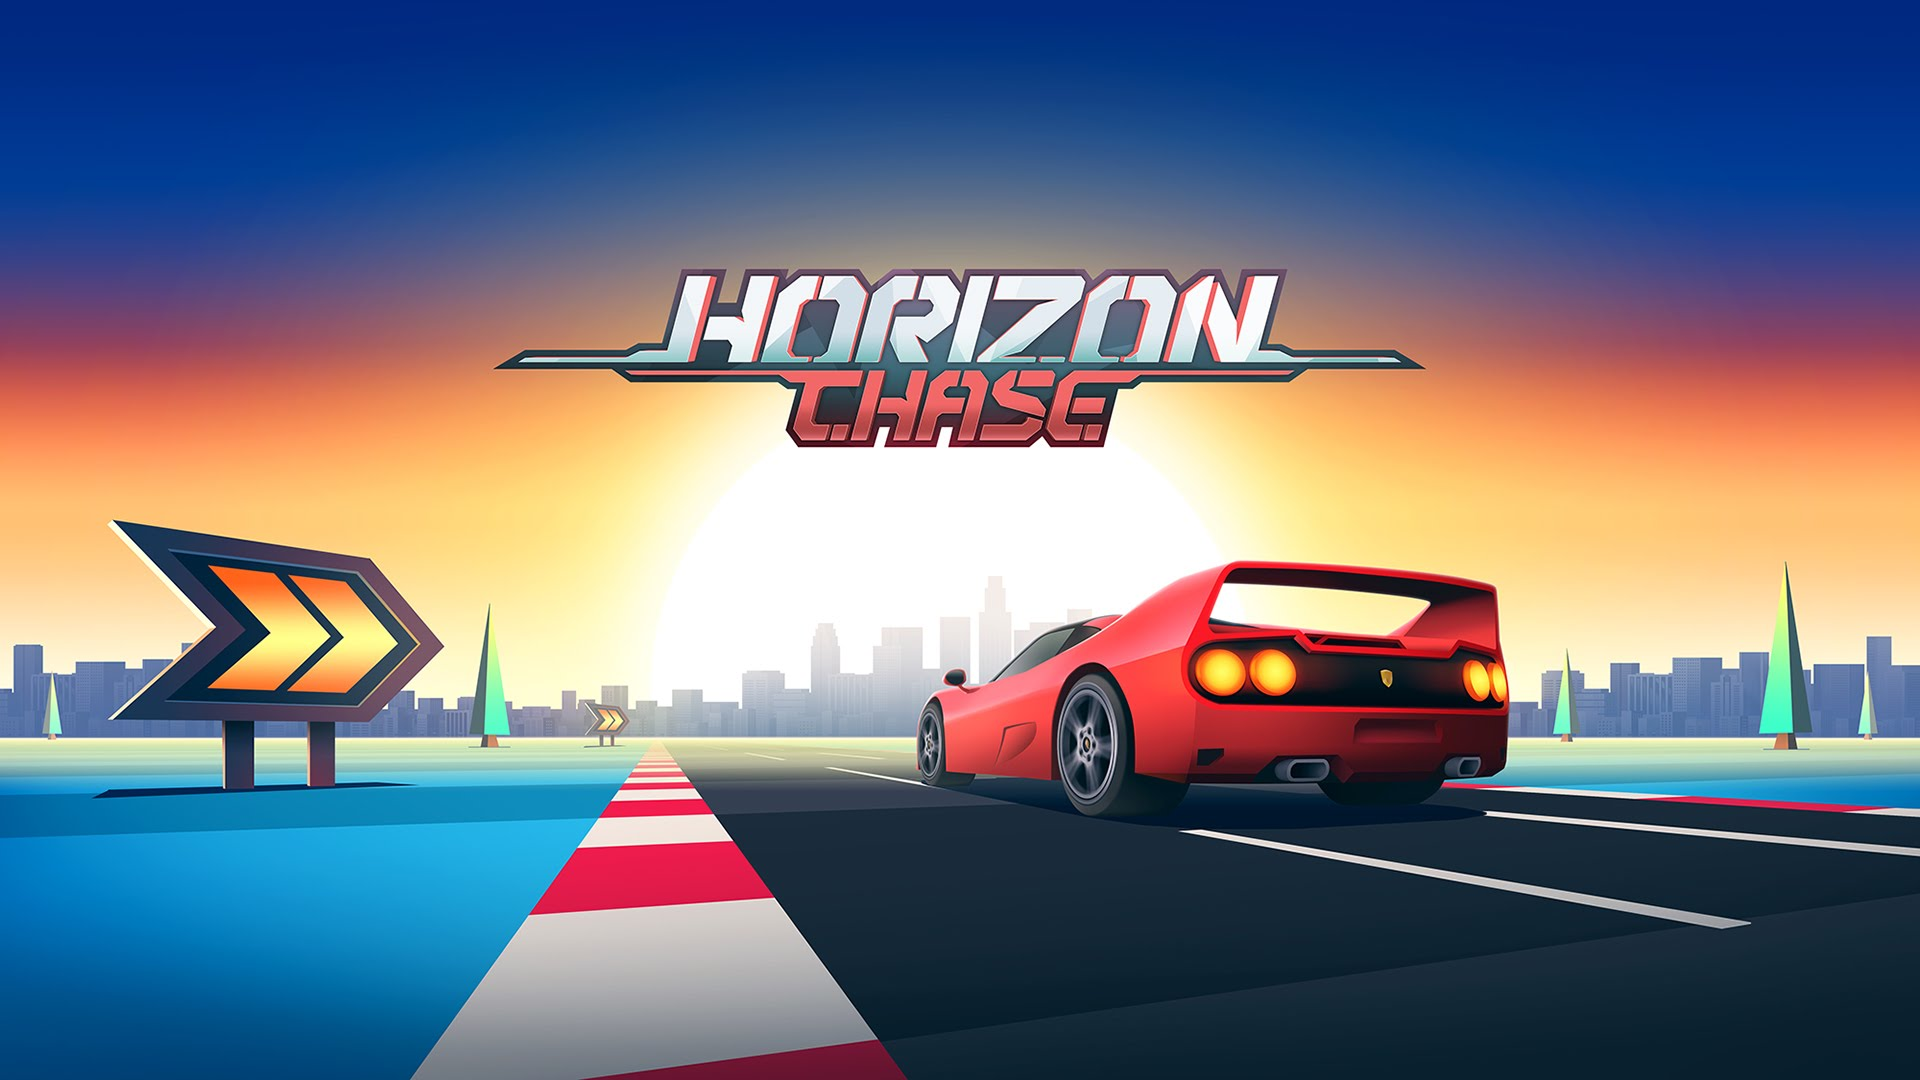 Horizon Chase retro artwork